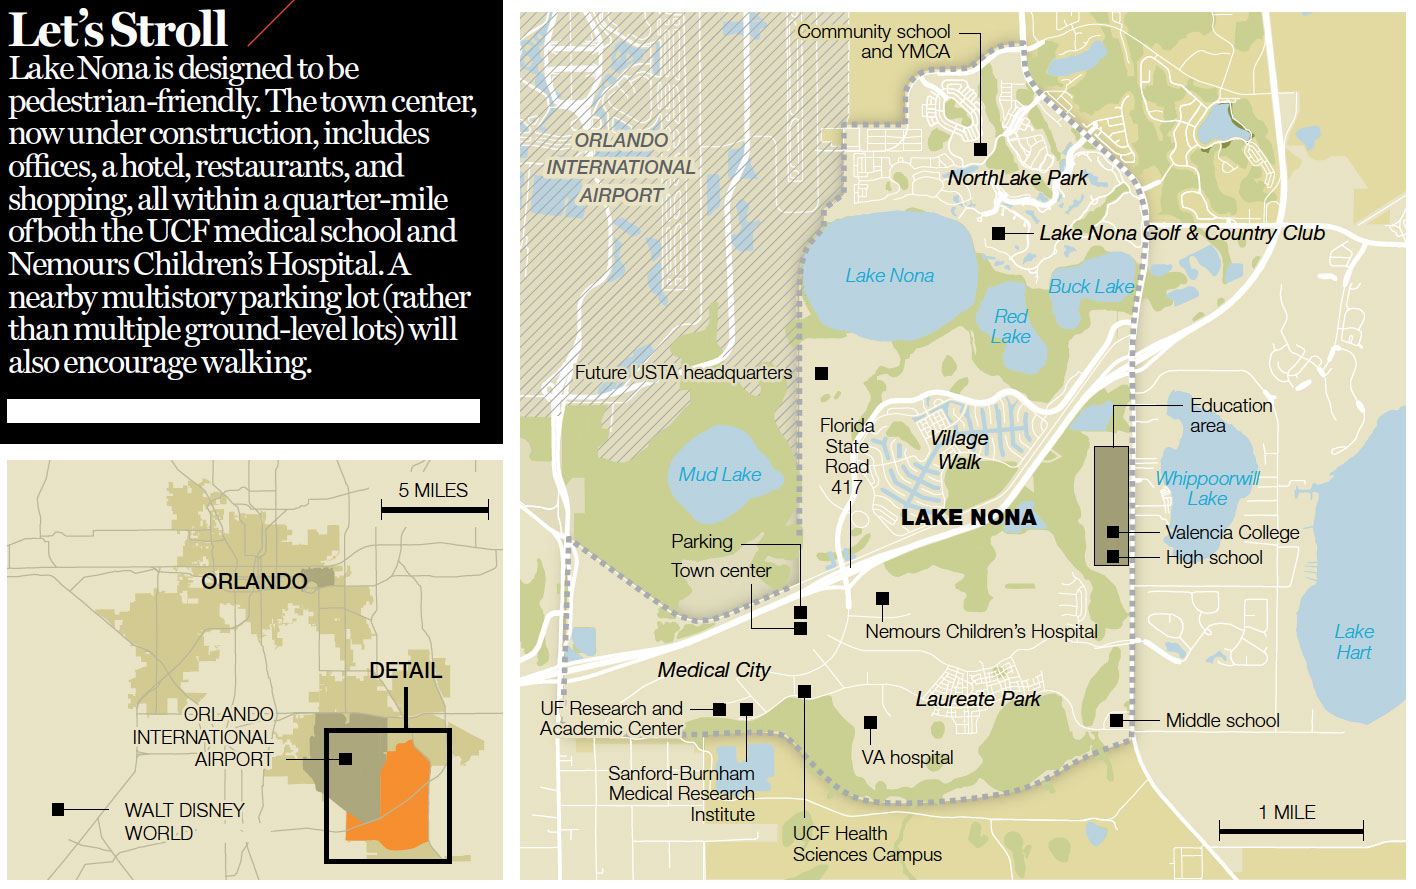 lake nona florida map How To Build A Great American City Fortune lake nona florida map